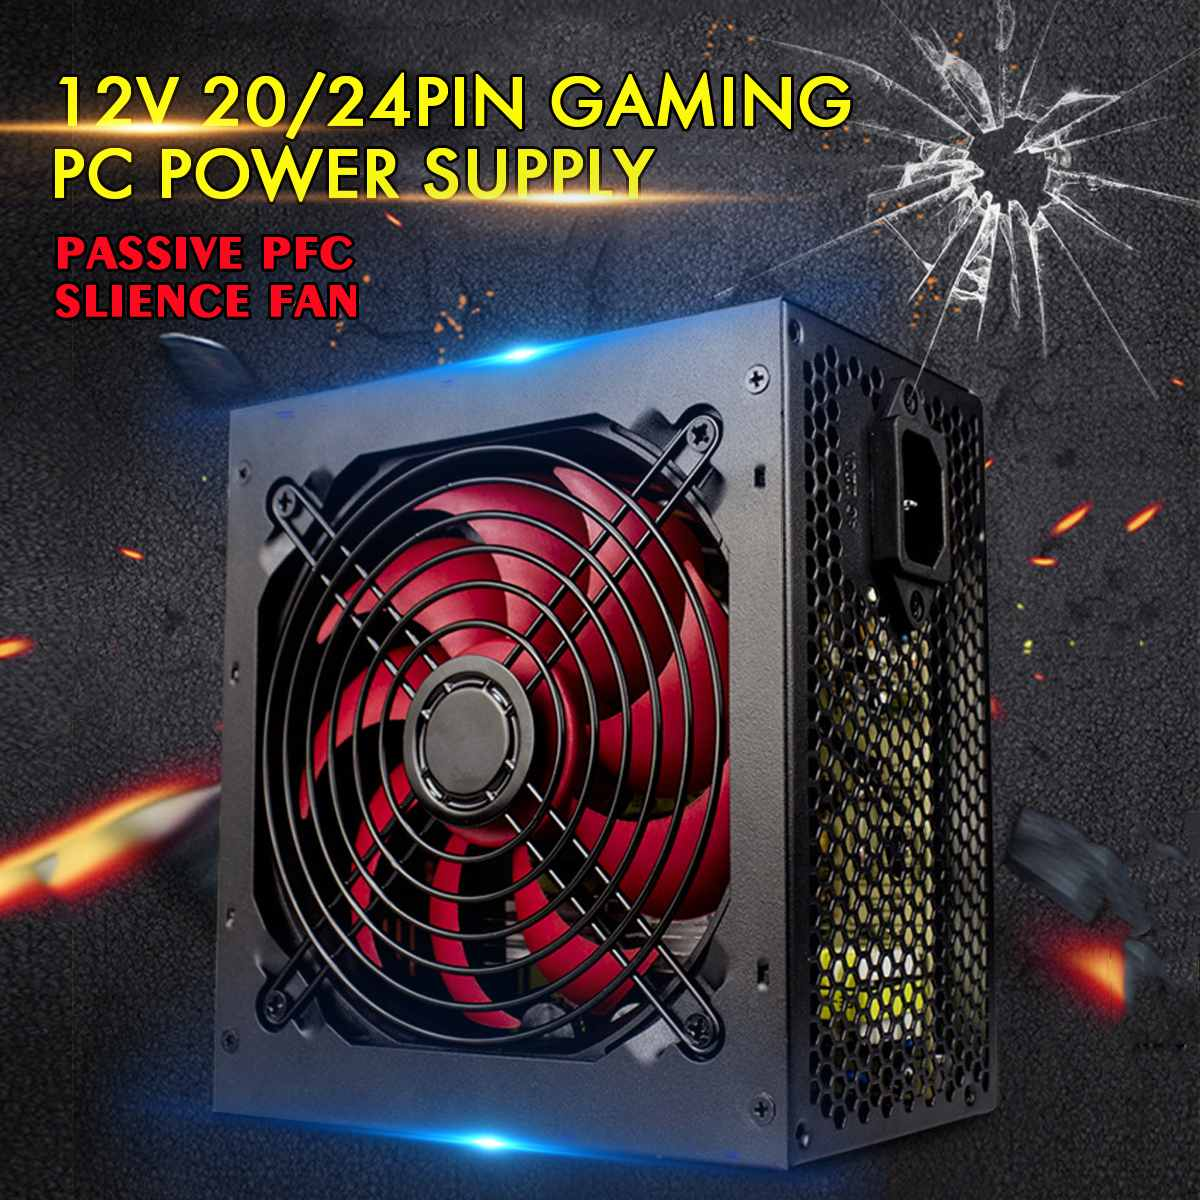 Max 650W Power Supply Passive PFC Silent Fan ATX 20/24pin 12V PC Computer SATA Gaming PC Power Supply